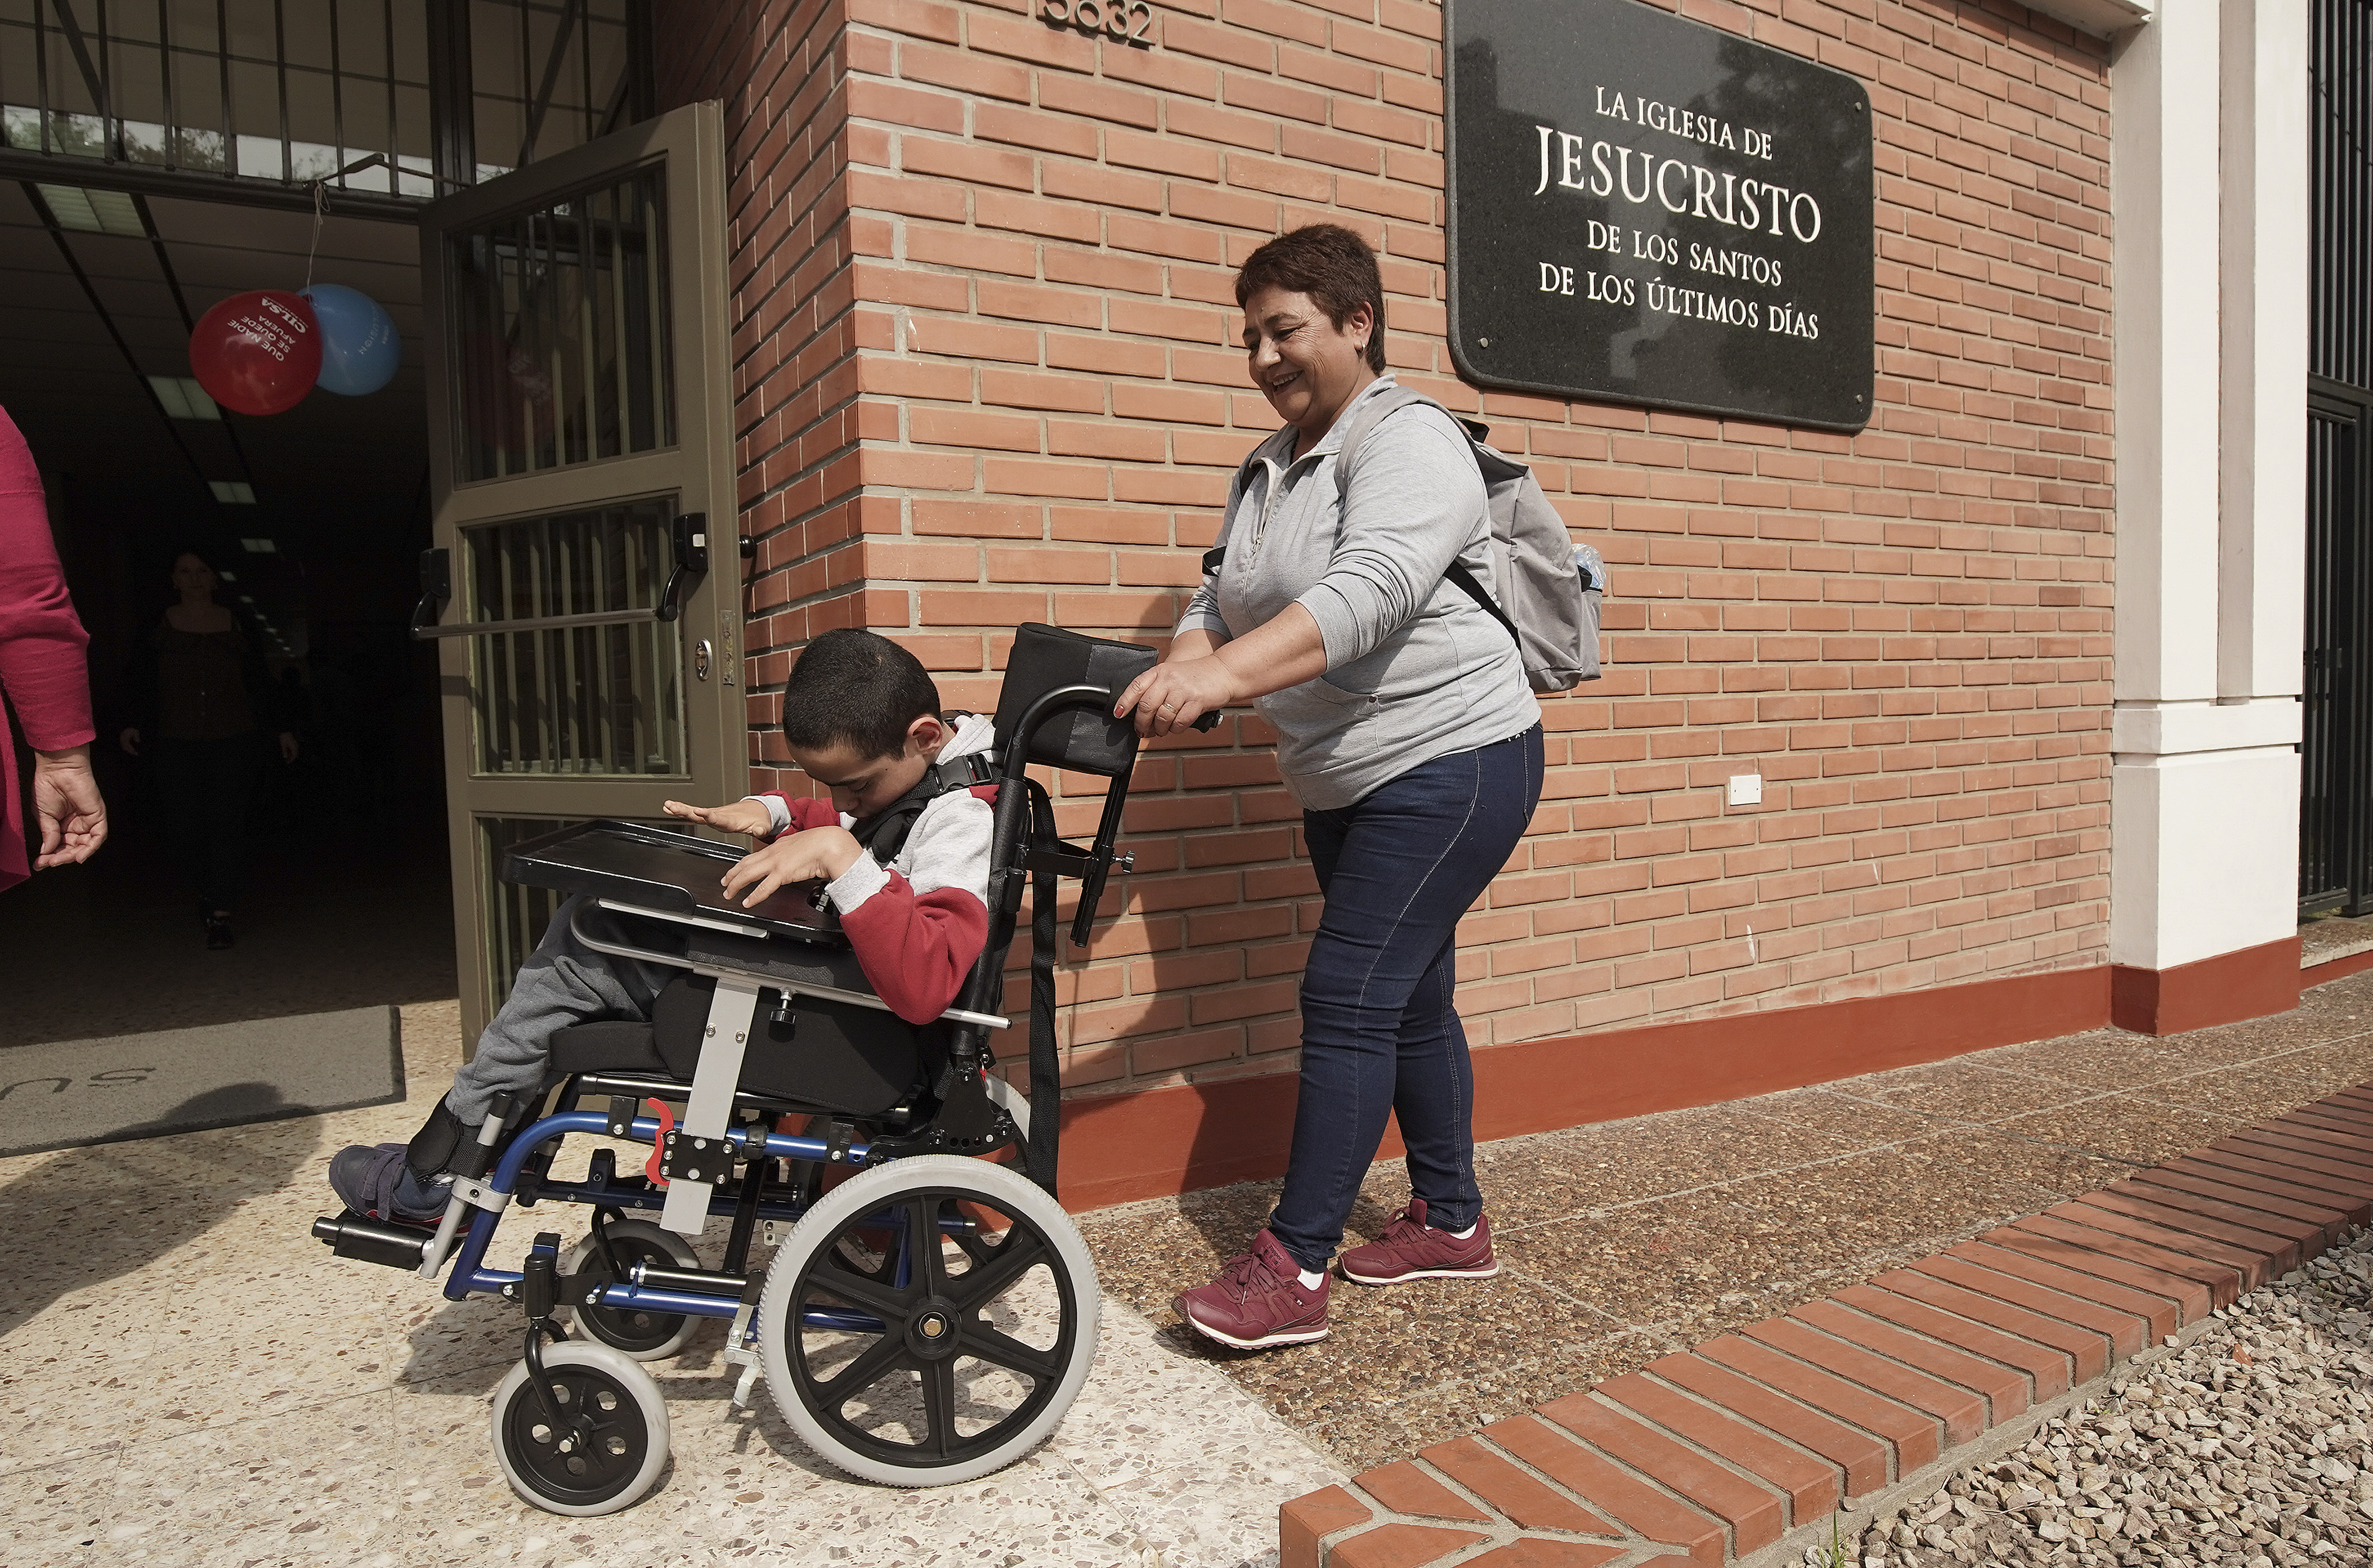 Norma Arguello pushes her son Nahuel in his new wheelchair as Latter-day Saint Charities donated wheelchairs to recipients at the Villa Urquiza Ward meetinghouse in Buenos Aires, Argentina, on Wednesday, Aug. 28, 2019.